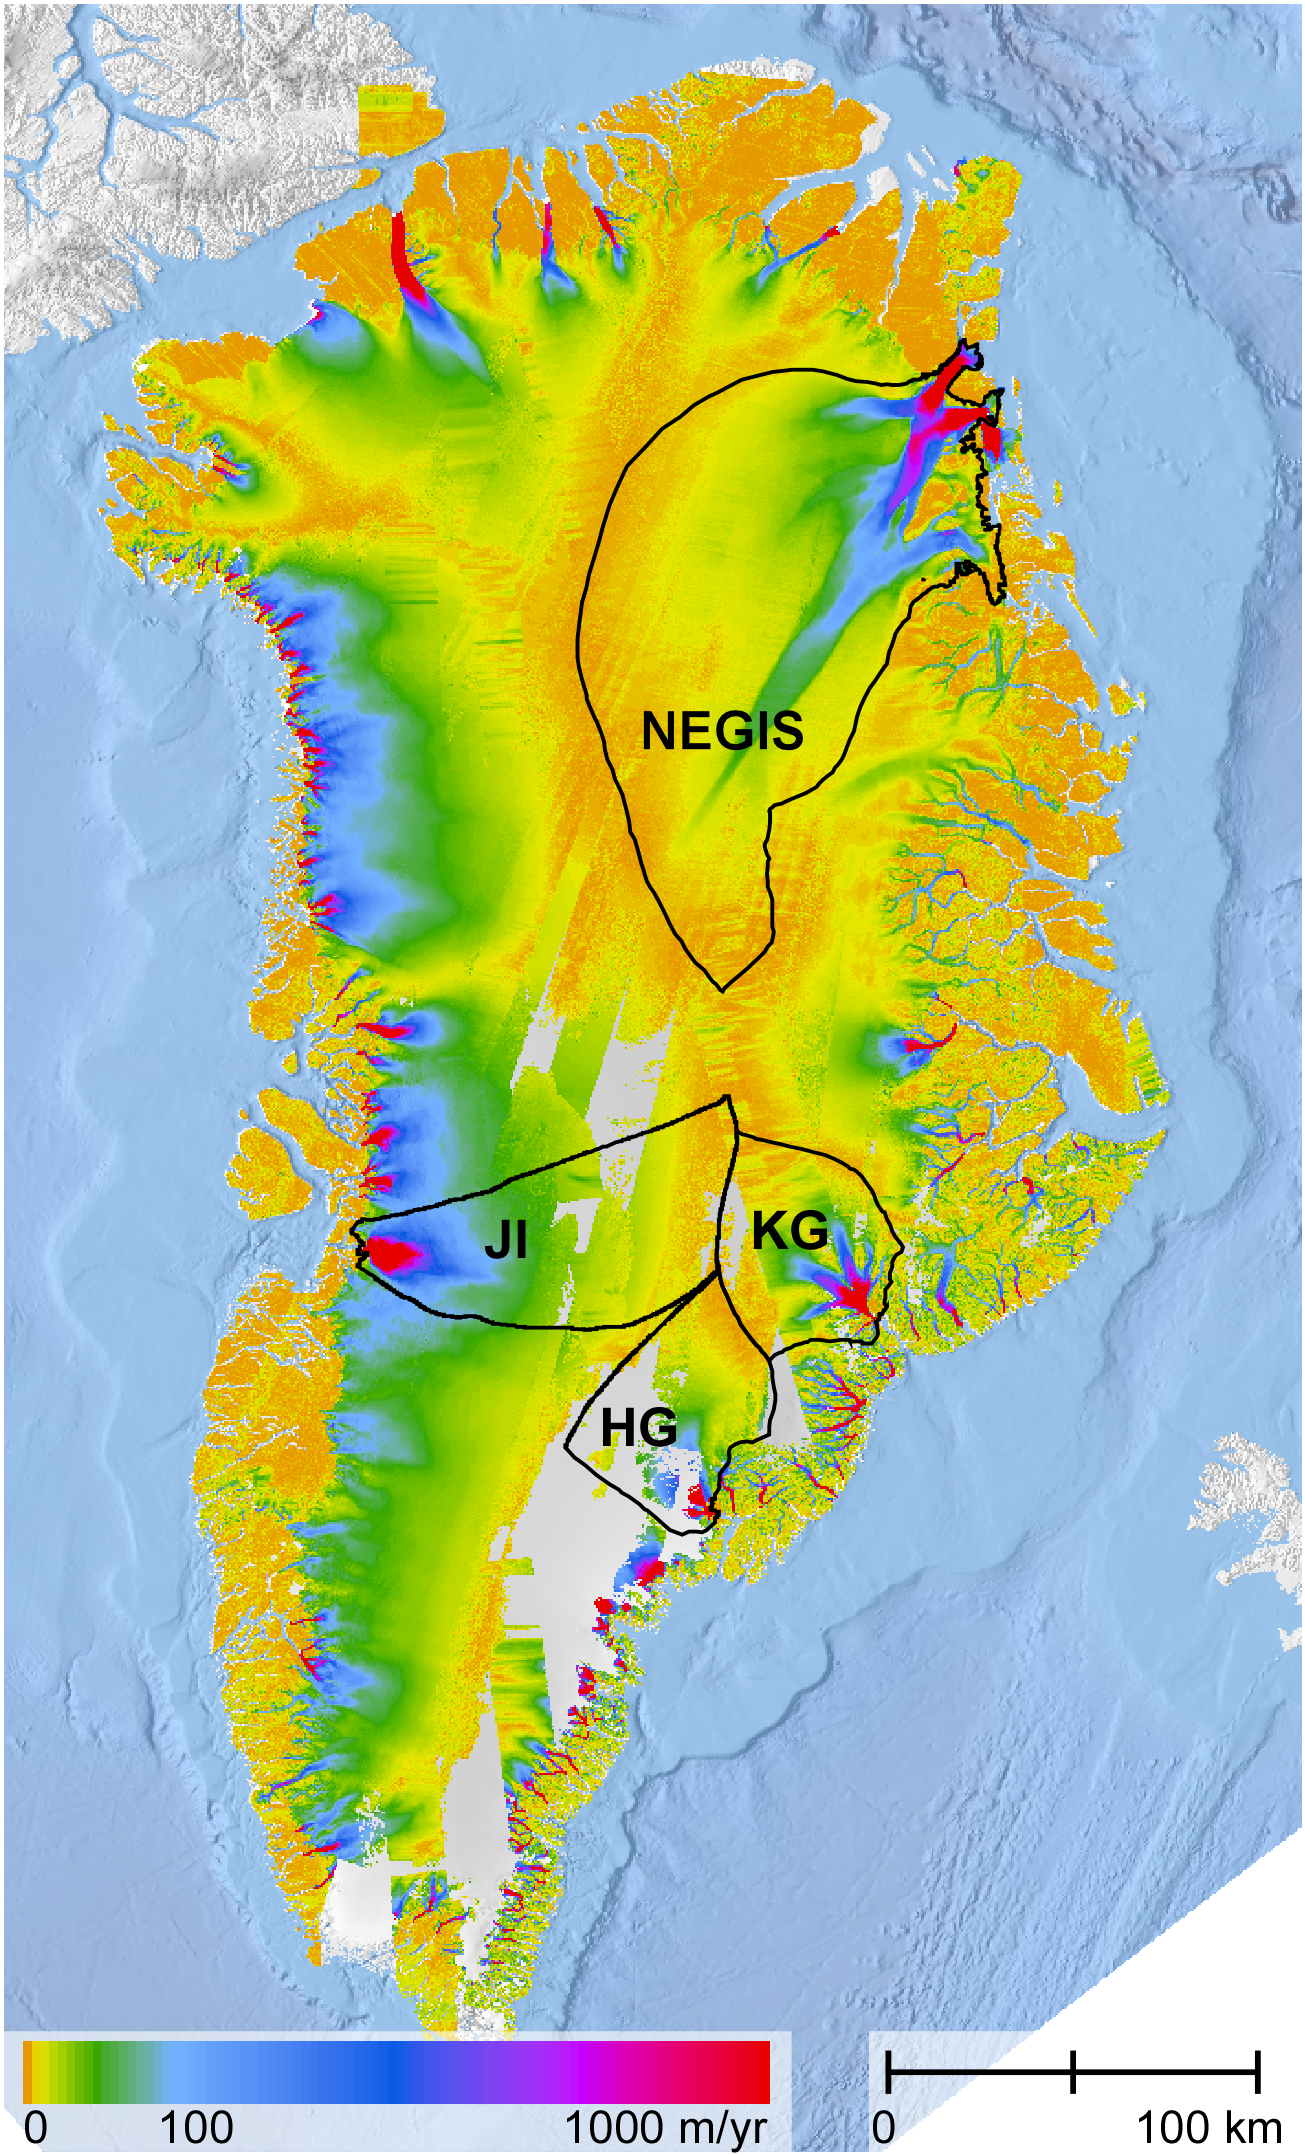 Major ice drainages in Greenland overlain on a map of measured ice surface velocities. The northeast Greenland ice stream (NEGIS), Jakobshavn Isbræ (JI), Helheim Glacier (HG) and Kangerdlugssuaq (KG) catchments are shown. Photo courtesy of The Ohio State University.